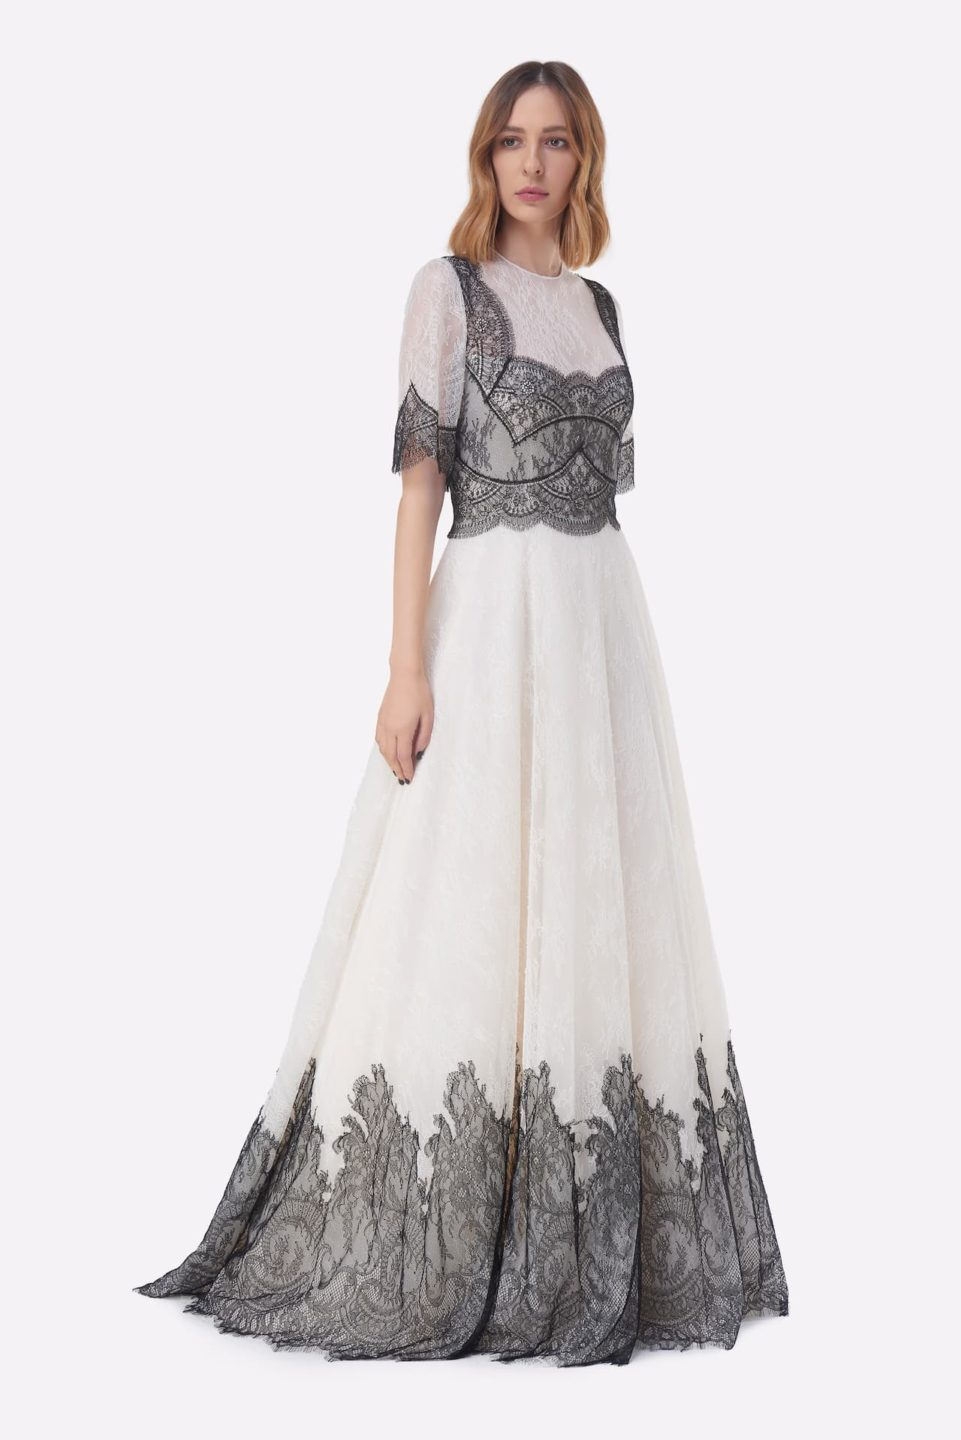 Avina PS2117 White & black Chantilly Lace Illusion-Neckline Fit & Flare Gown with Scalloped French Lace Appliques